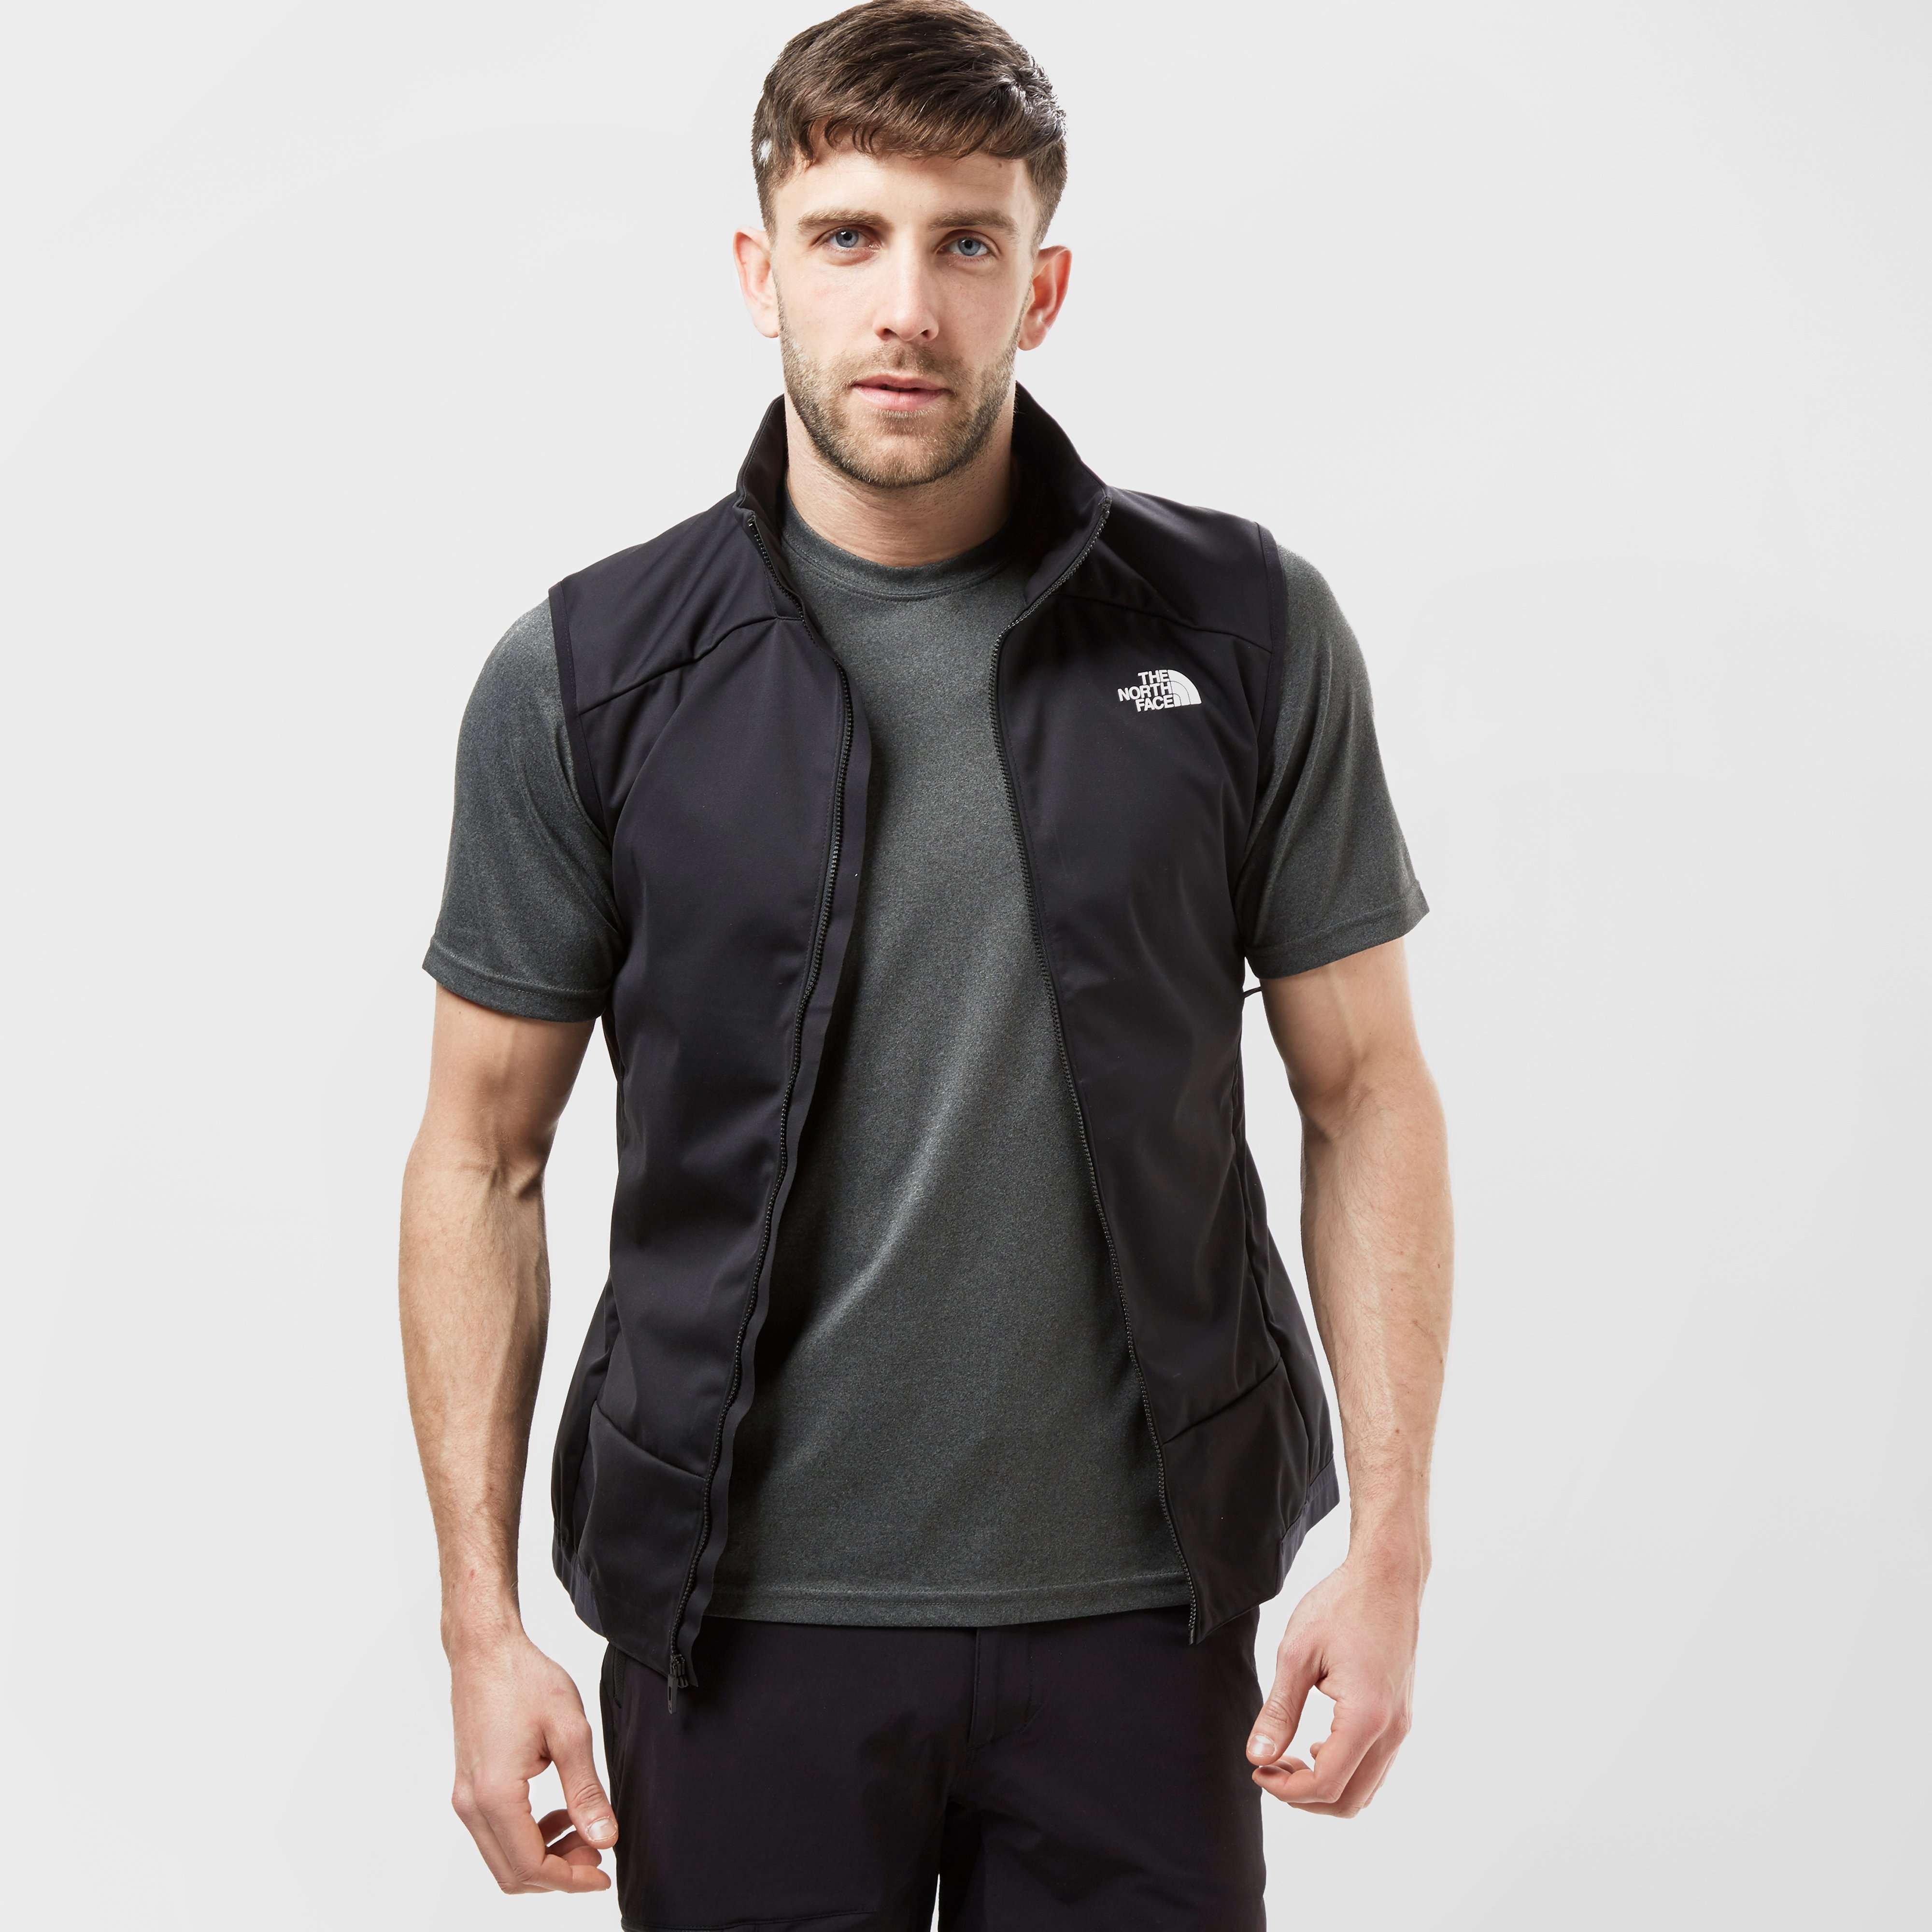 THE NORTH FACE Men's Aterpea Softshell Vest